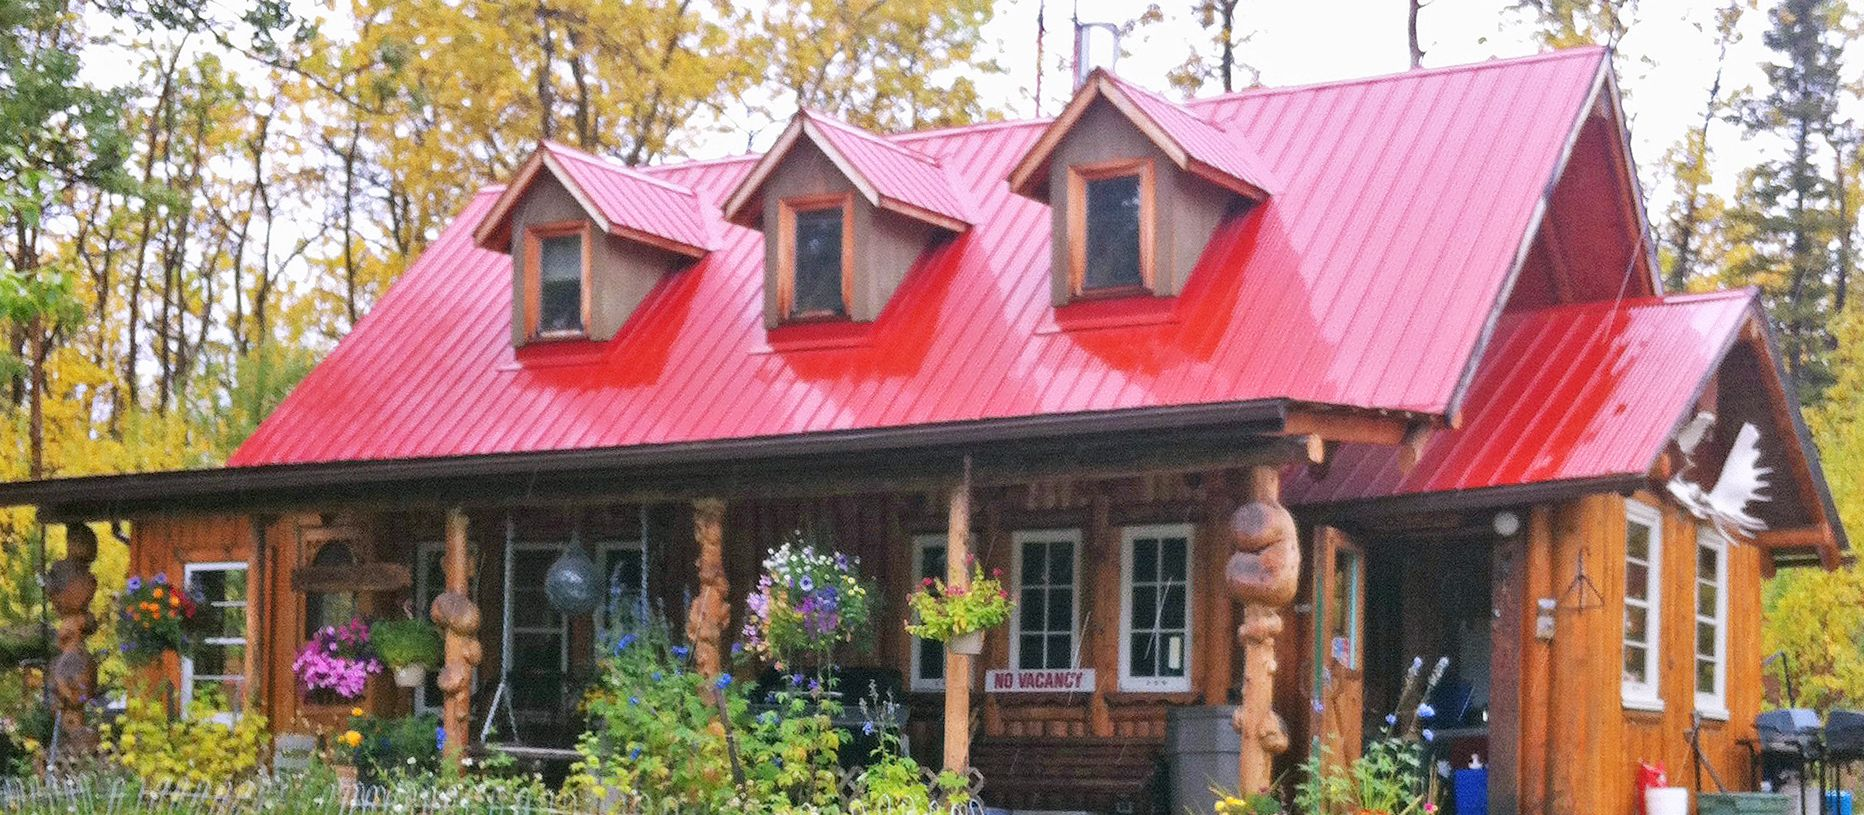 Cabin B & B in Haines Junction